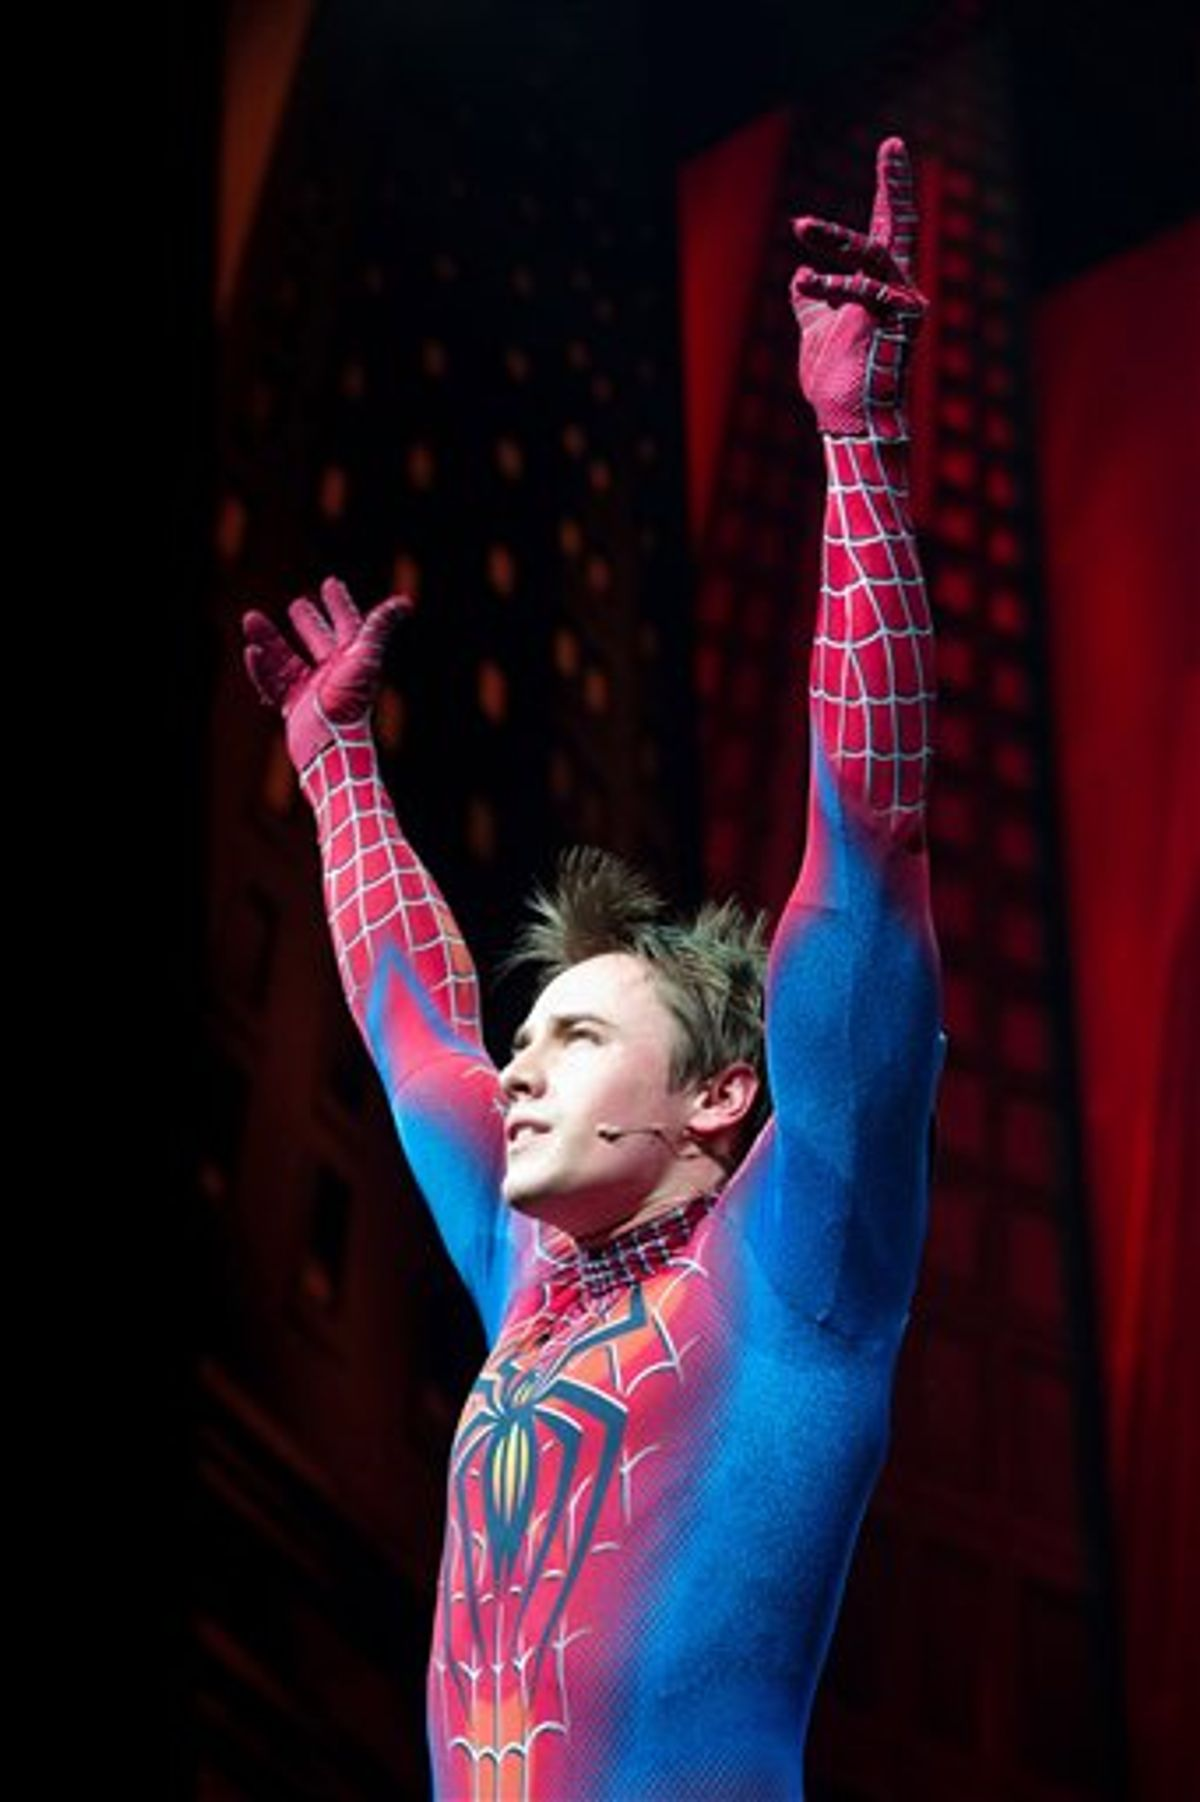 """Reeve Carney appears onstage at the curtain call for the opening night performance of the Broadway musical Spider-Man Turn Off the Dark"""" in New York, Tuesday, June 14, 2011. (AP Photo/Charles Sykes)  (AP)"""